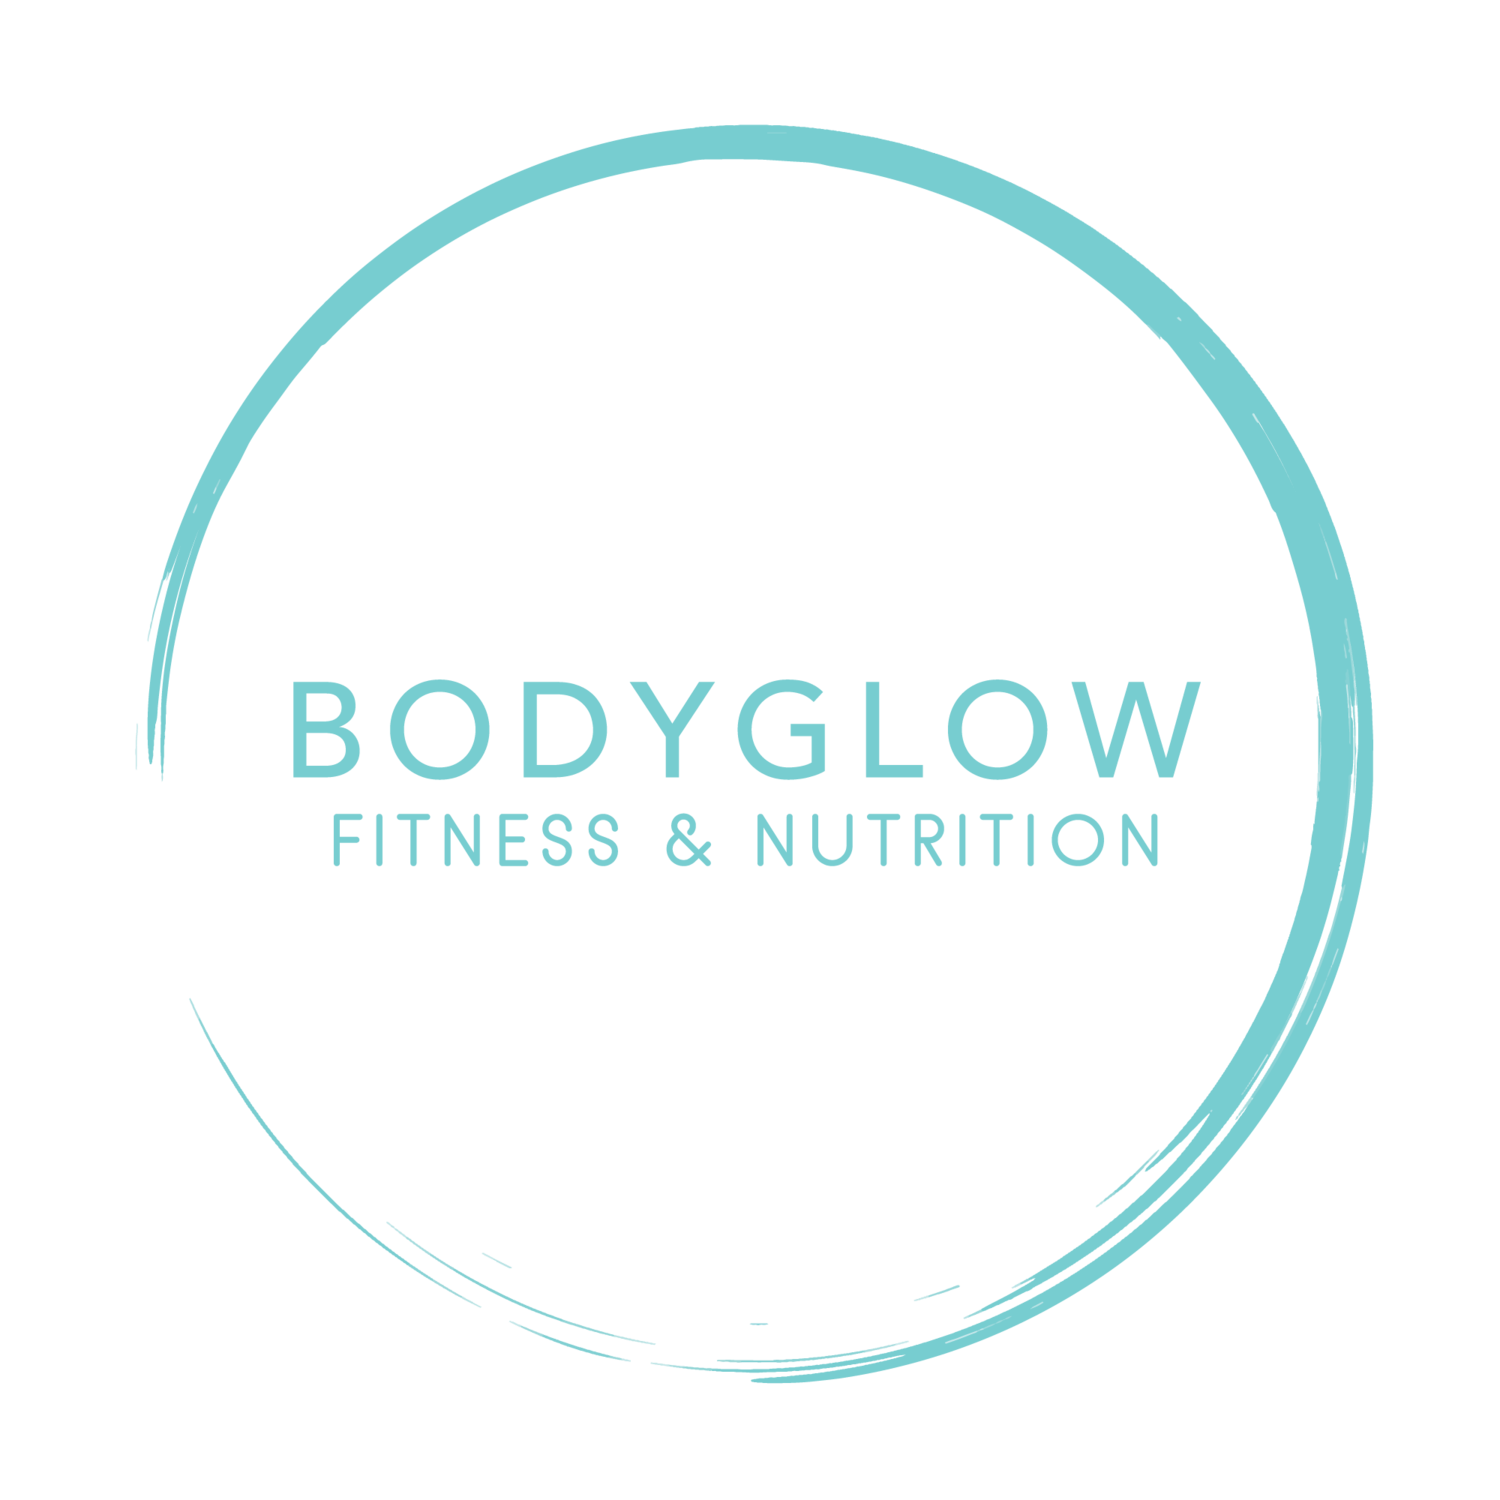 BODYGLOW| ONLINE COACH AND PERSONAL TRAINER FOR THE ACTIVE WOMAN